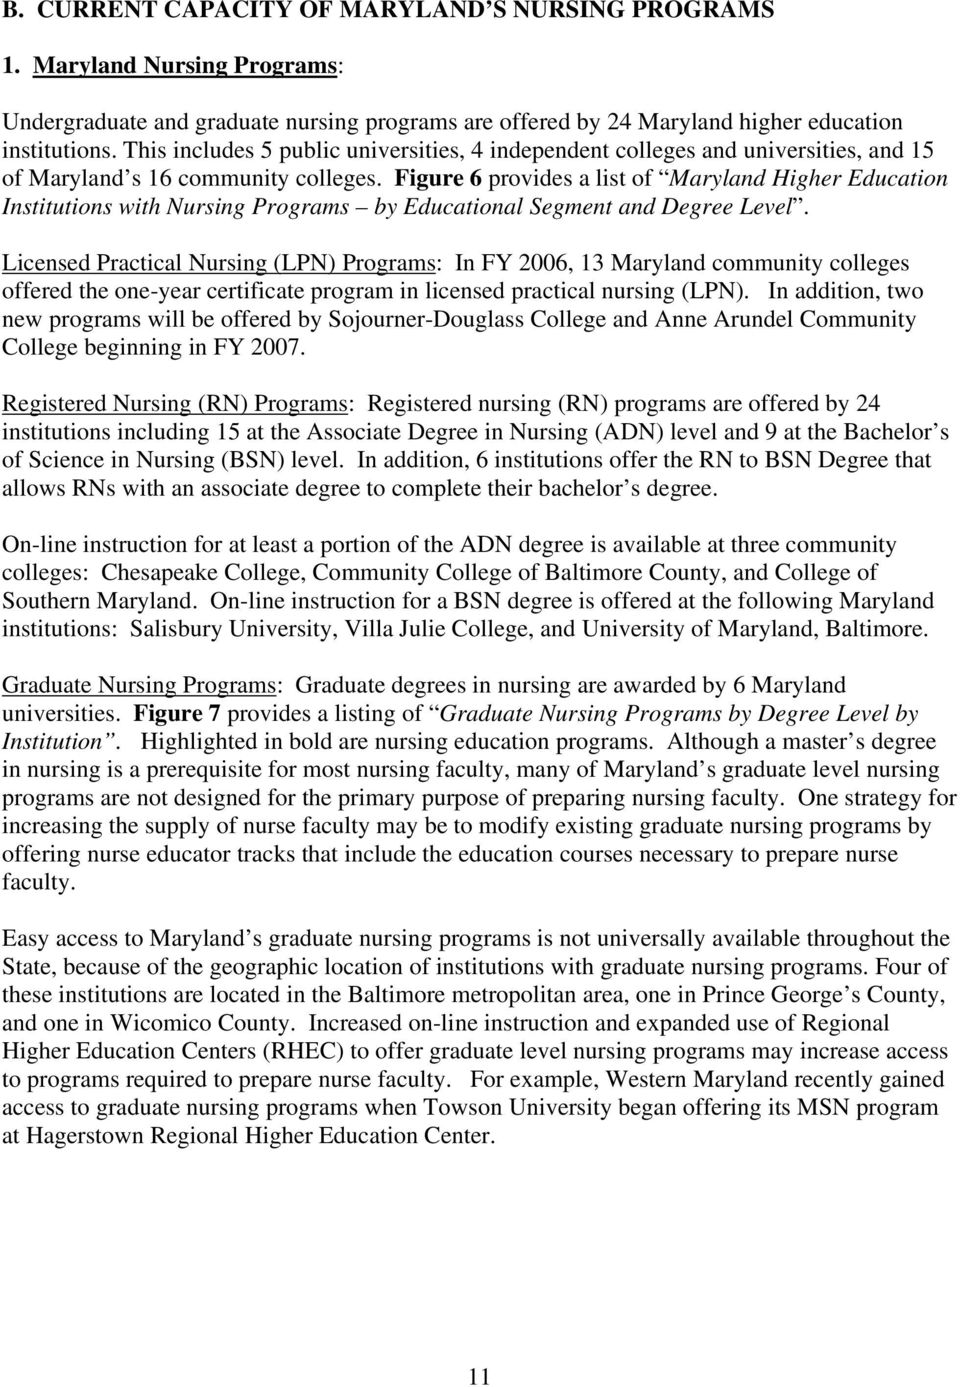 Figure 6 provides a list of Maryland Higher Education Institutions with Nursing Programs by Educational Segment and Degree Level.